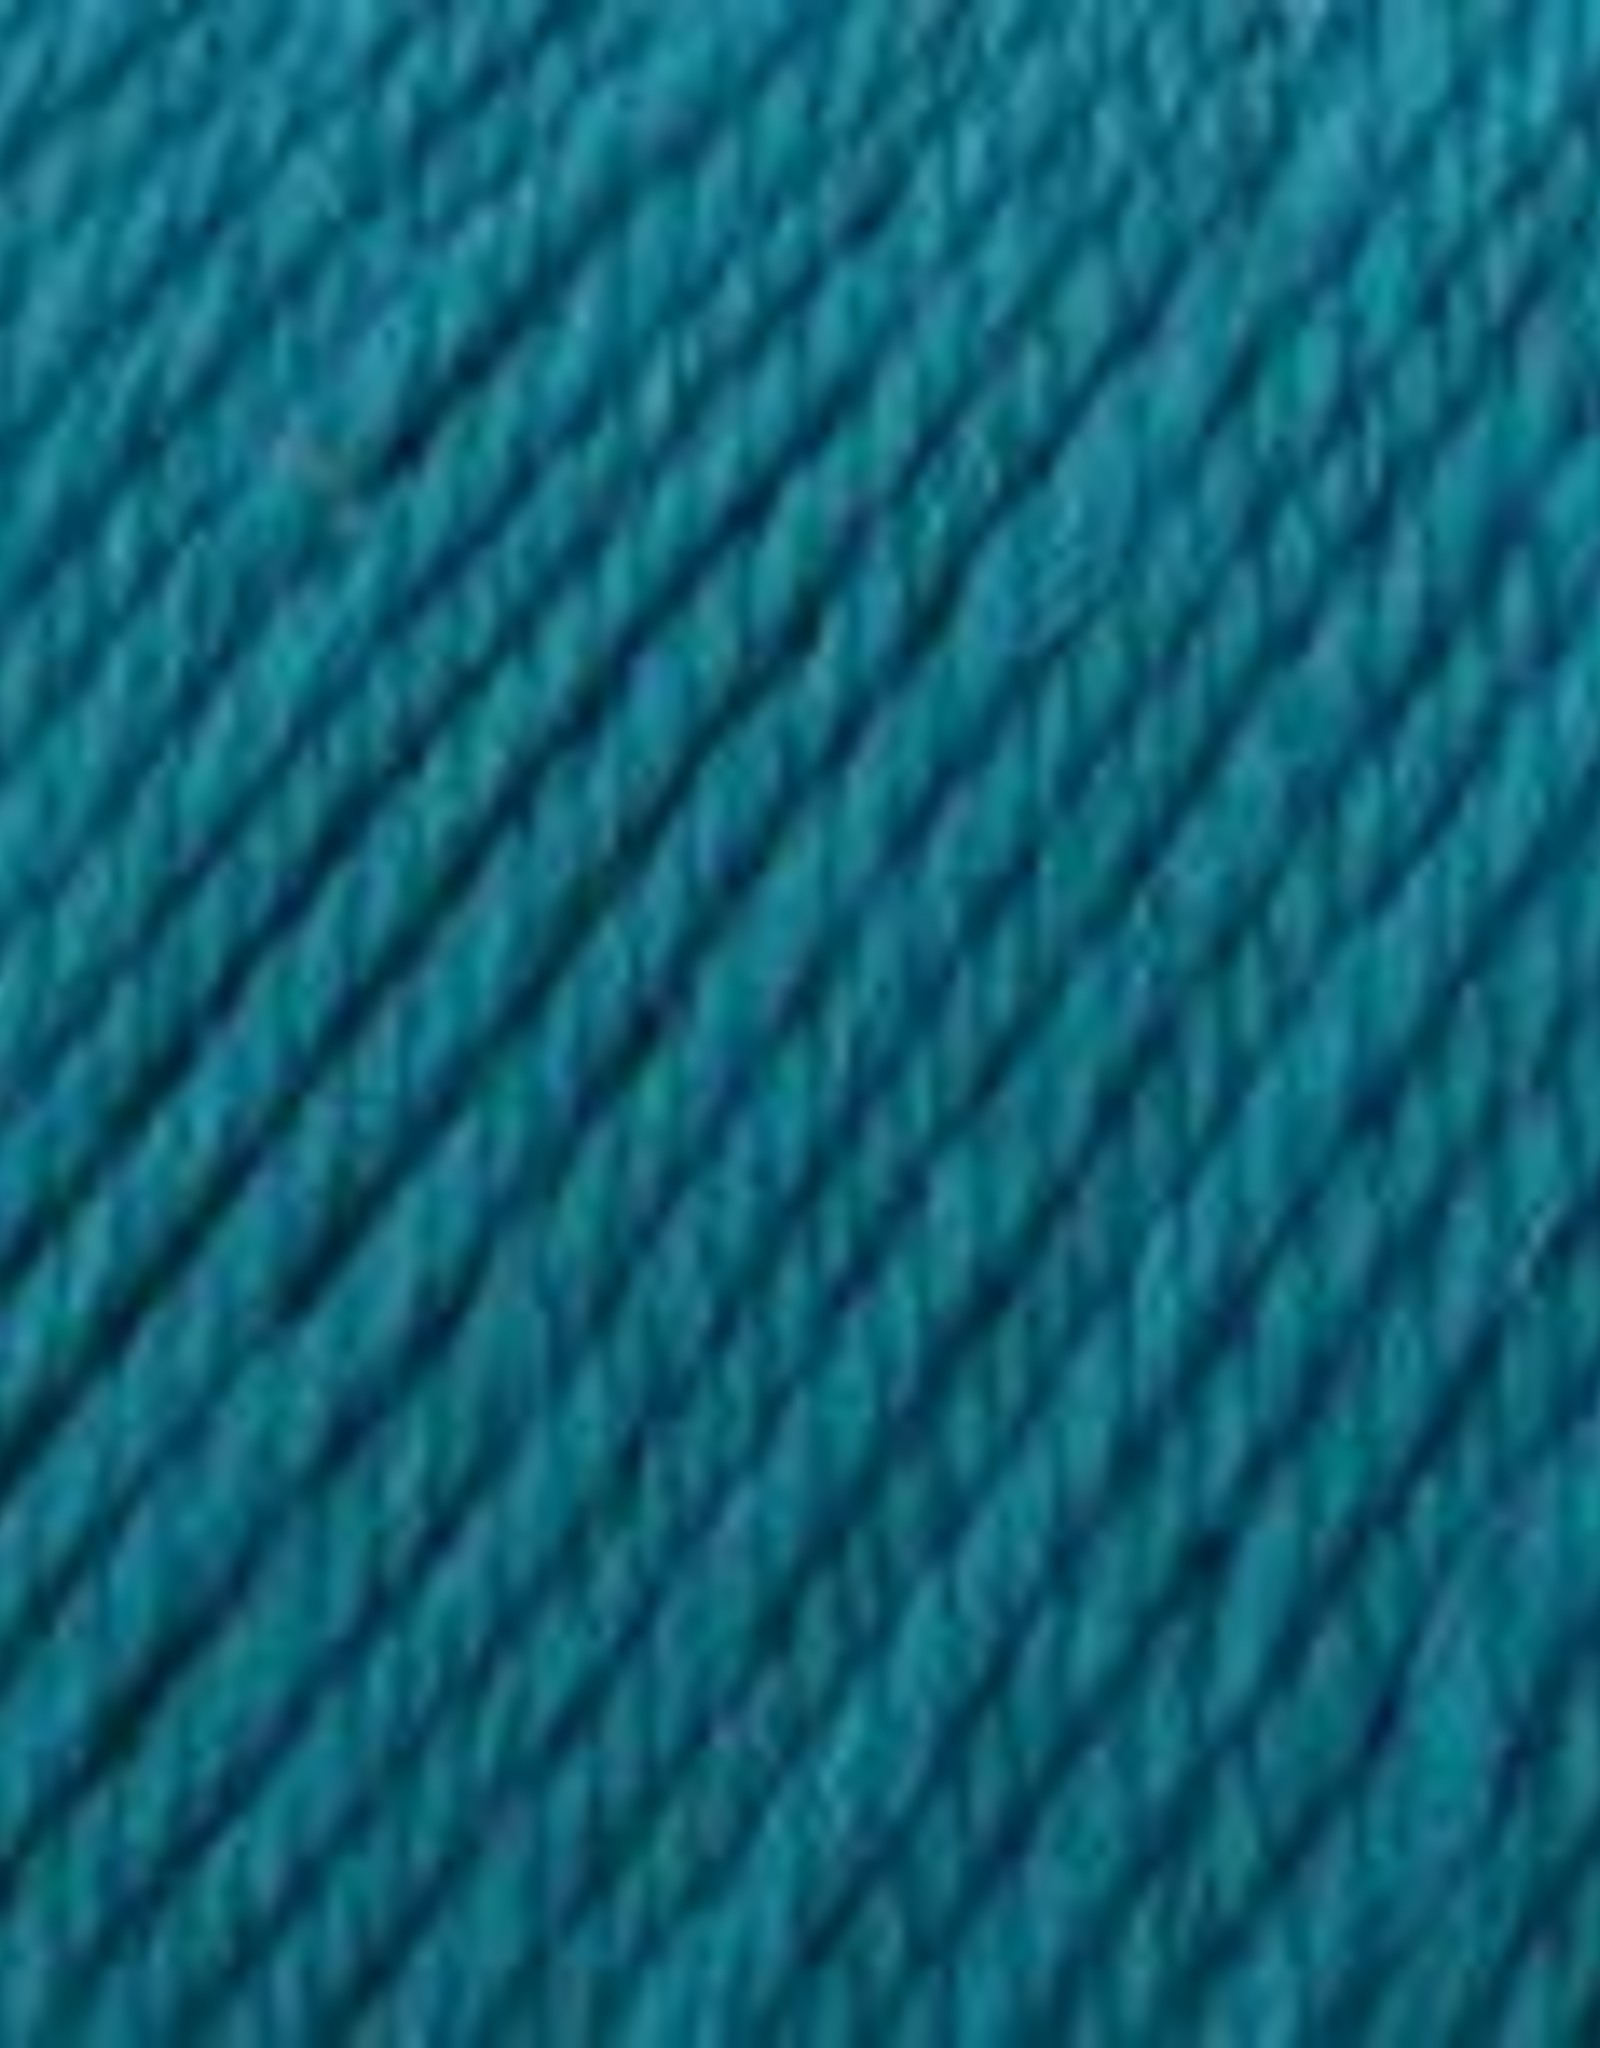 Universal Yarn Deluxe Bulky Superwash 915 Teal Viper